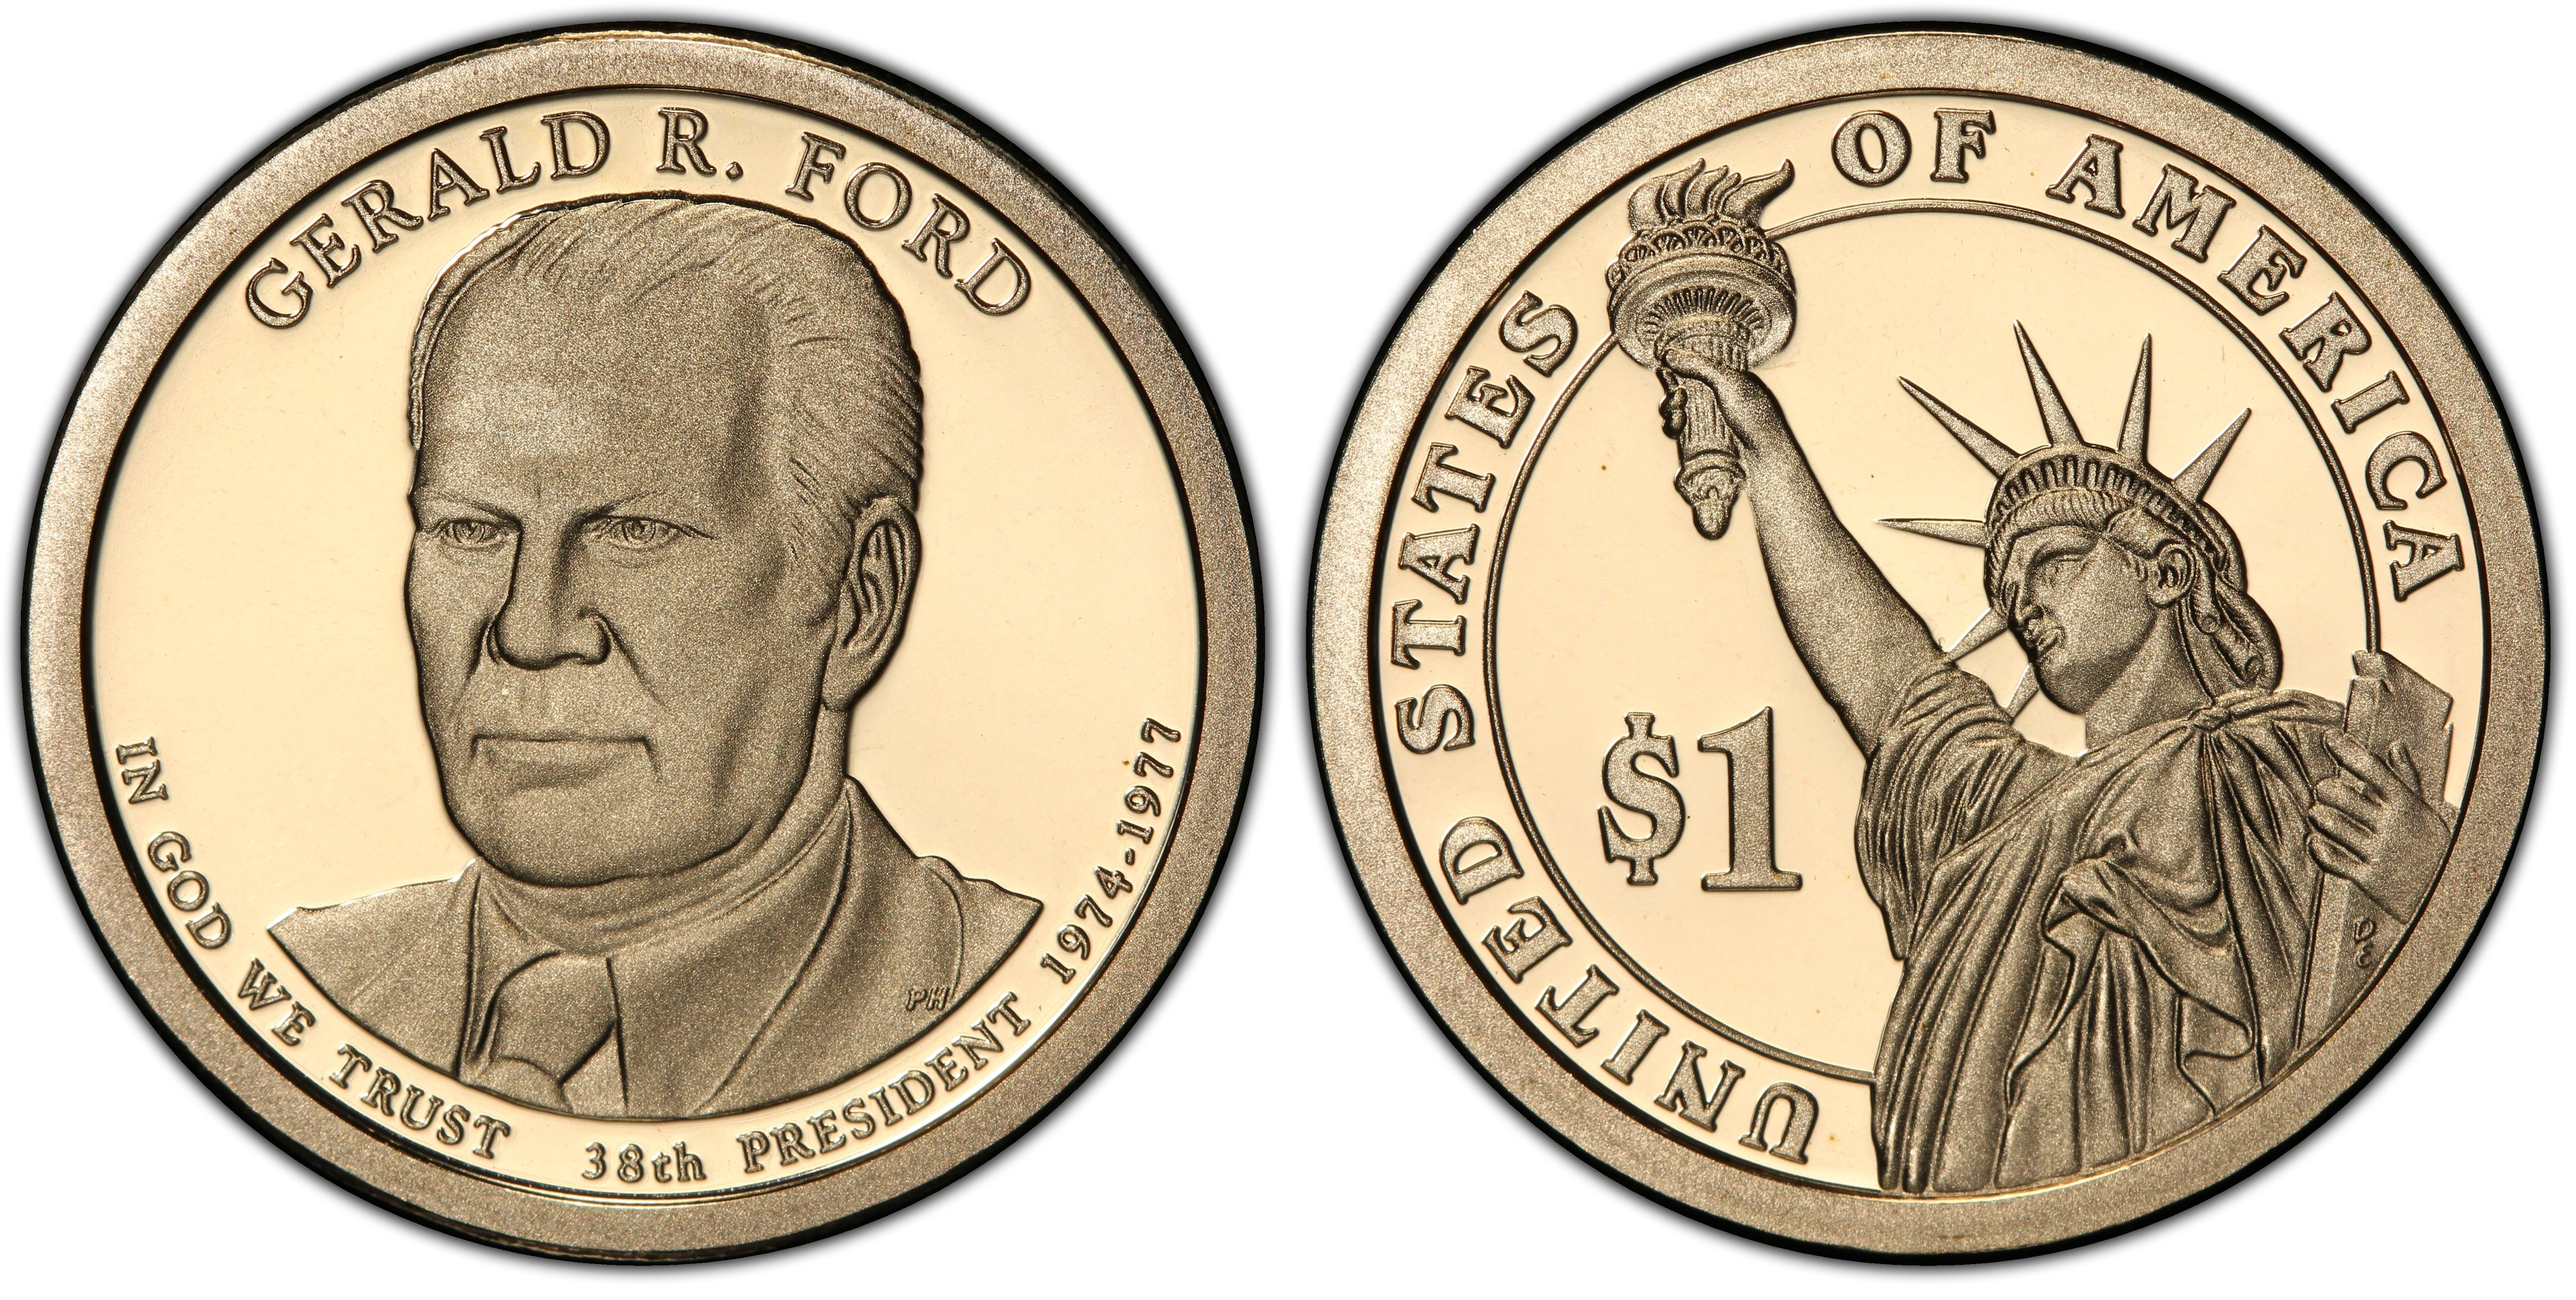 2016-S Gerald Ford 38th  Presidential Dollar PCGS First Day of Issue PR69DCAM